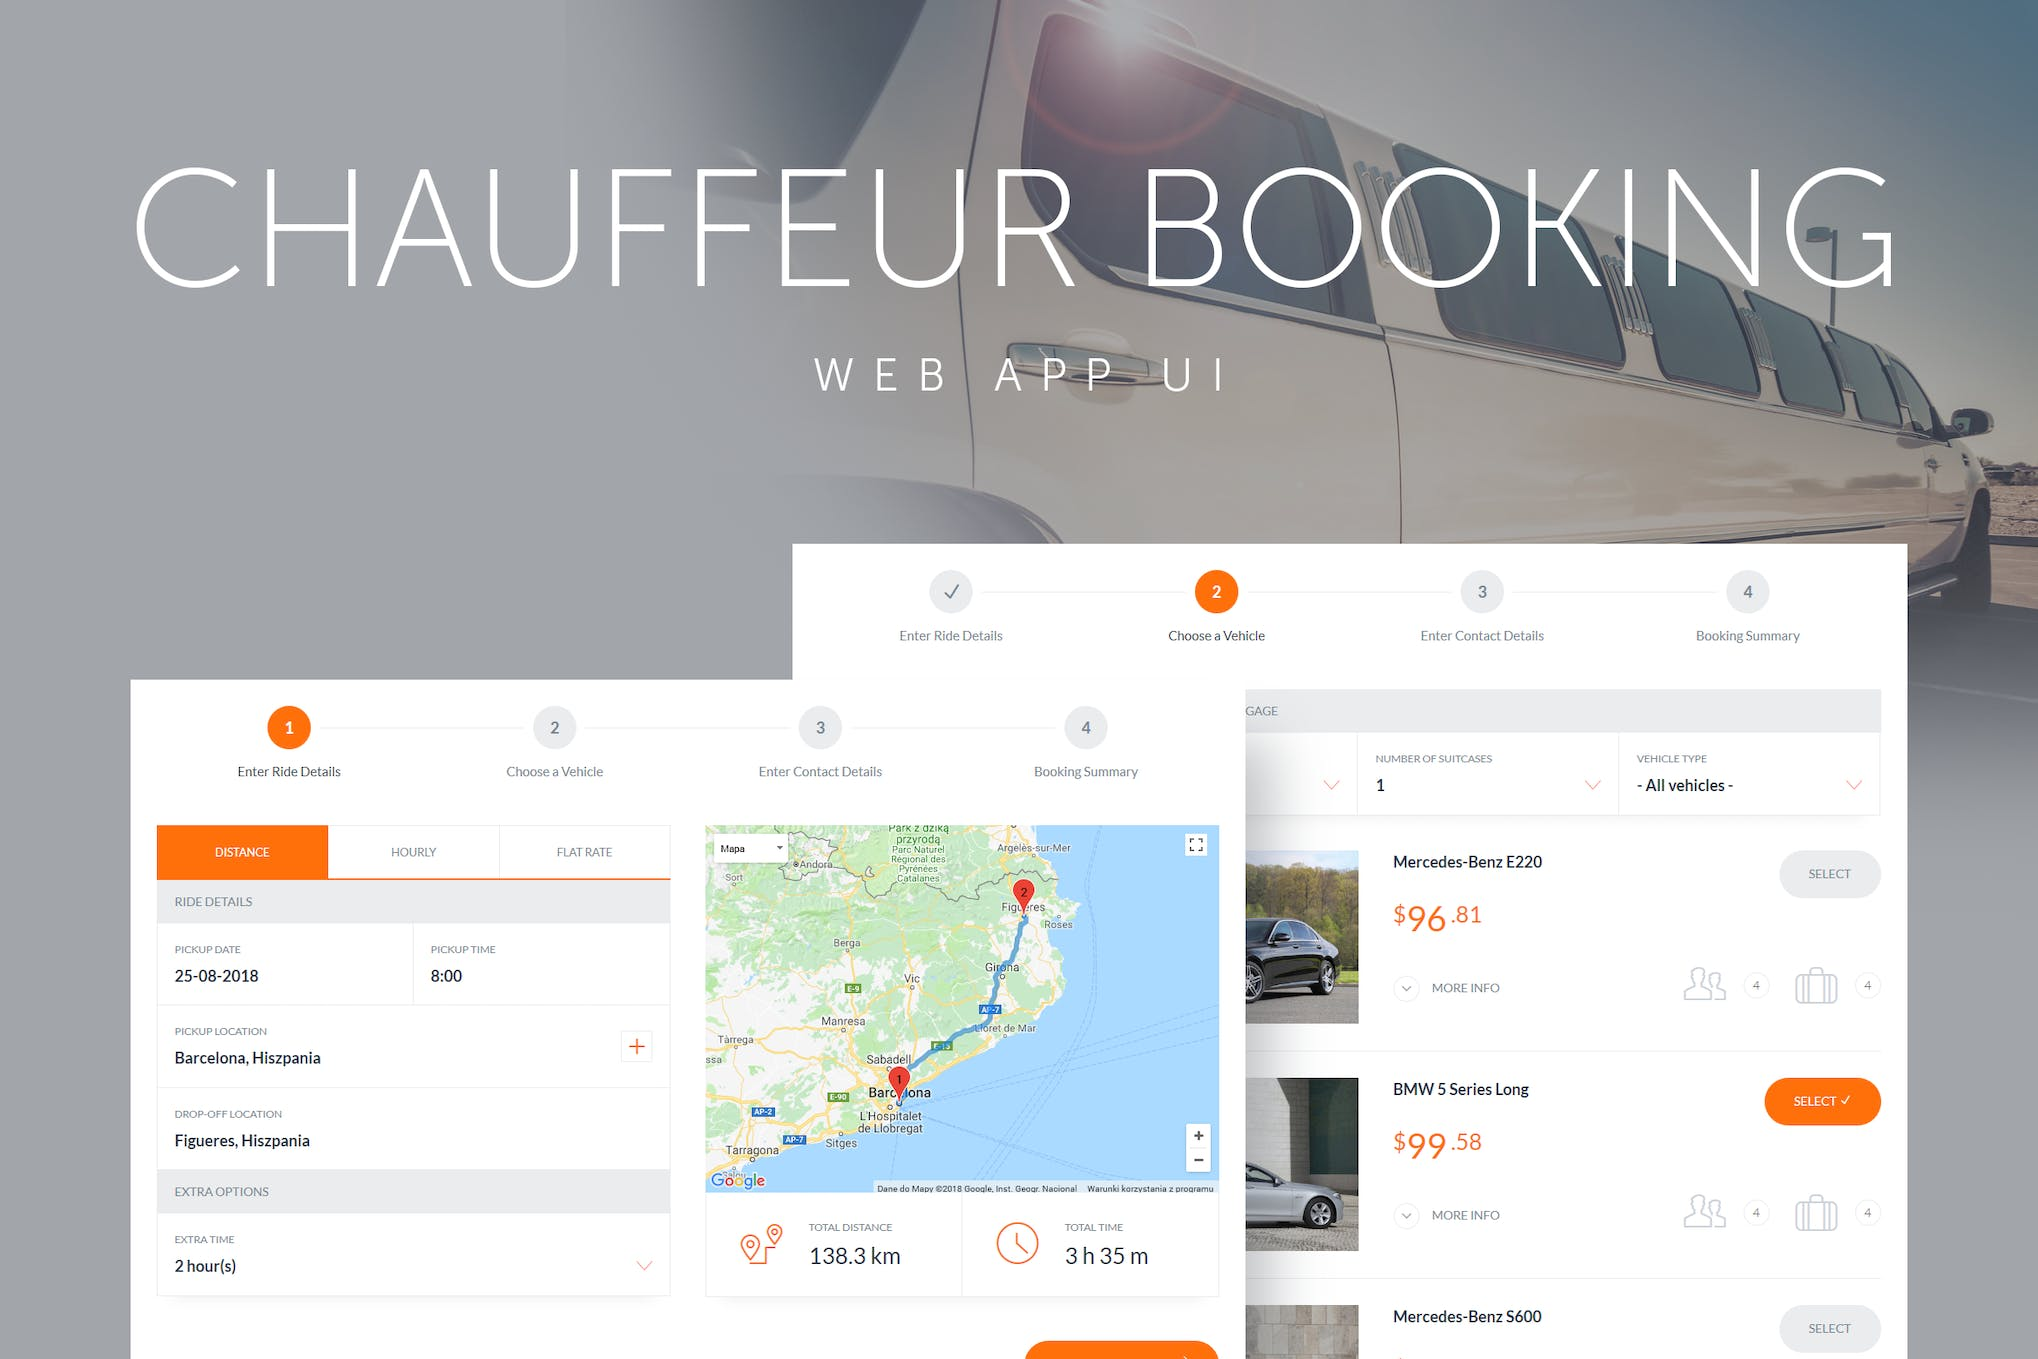 Chauffeur Booking System Web App UI by QuanticaLabs on Envato Elements